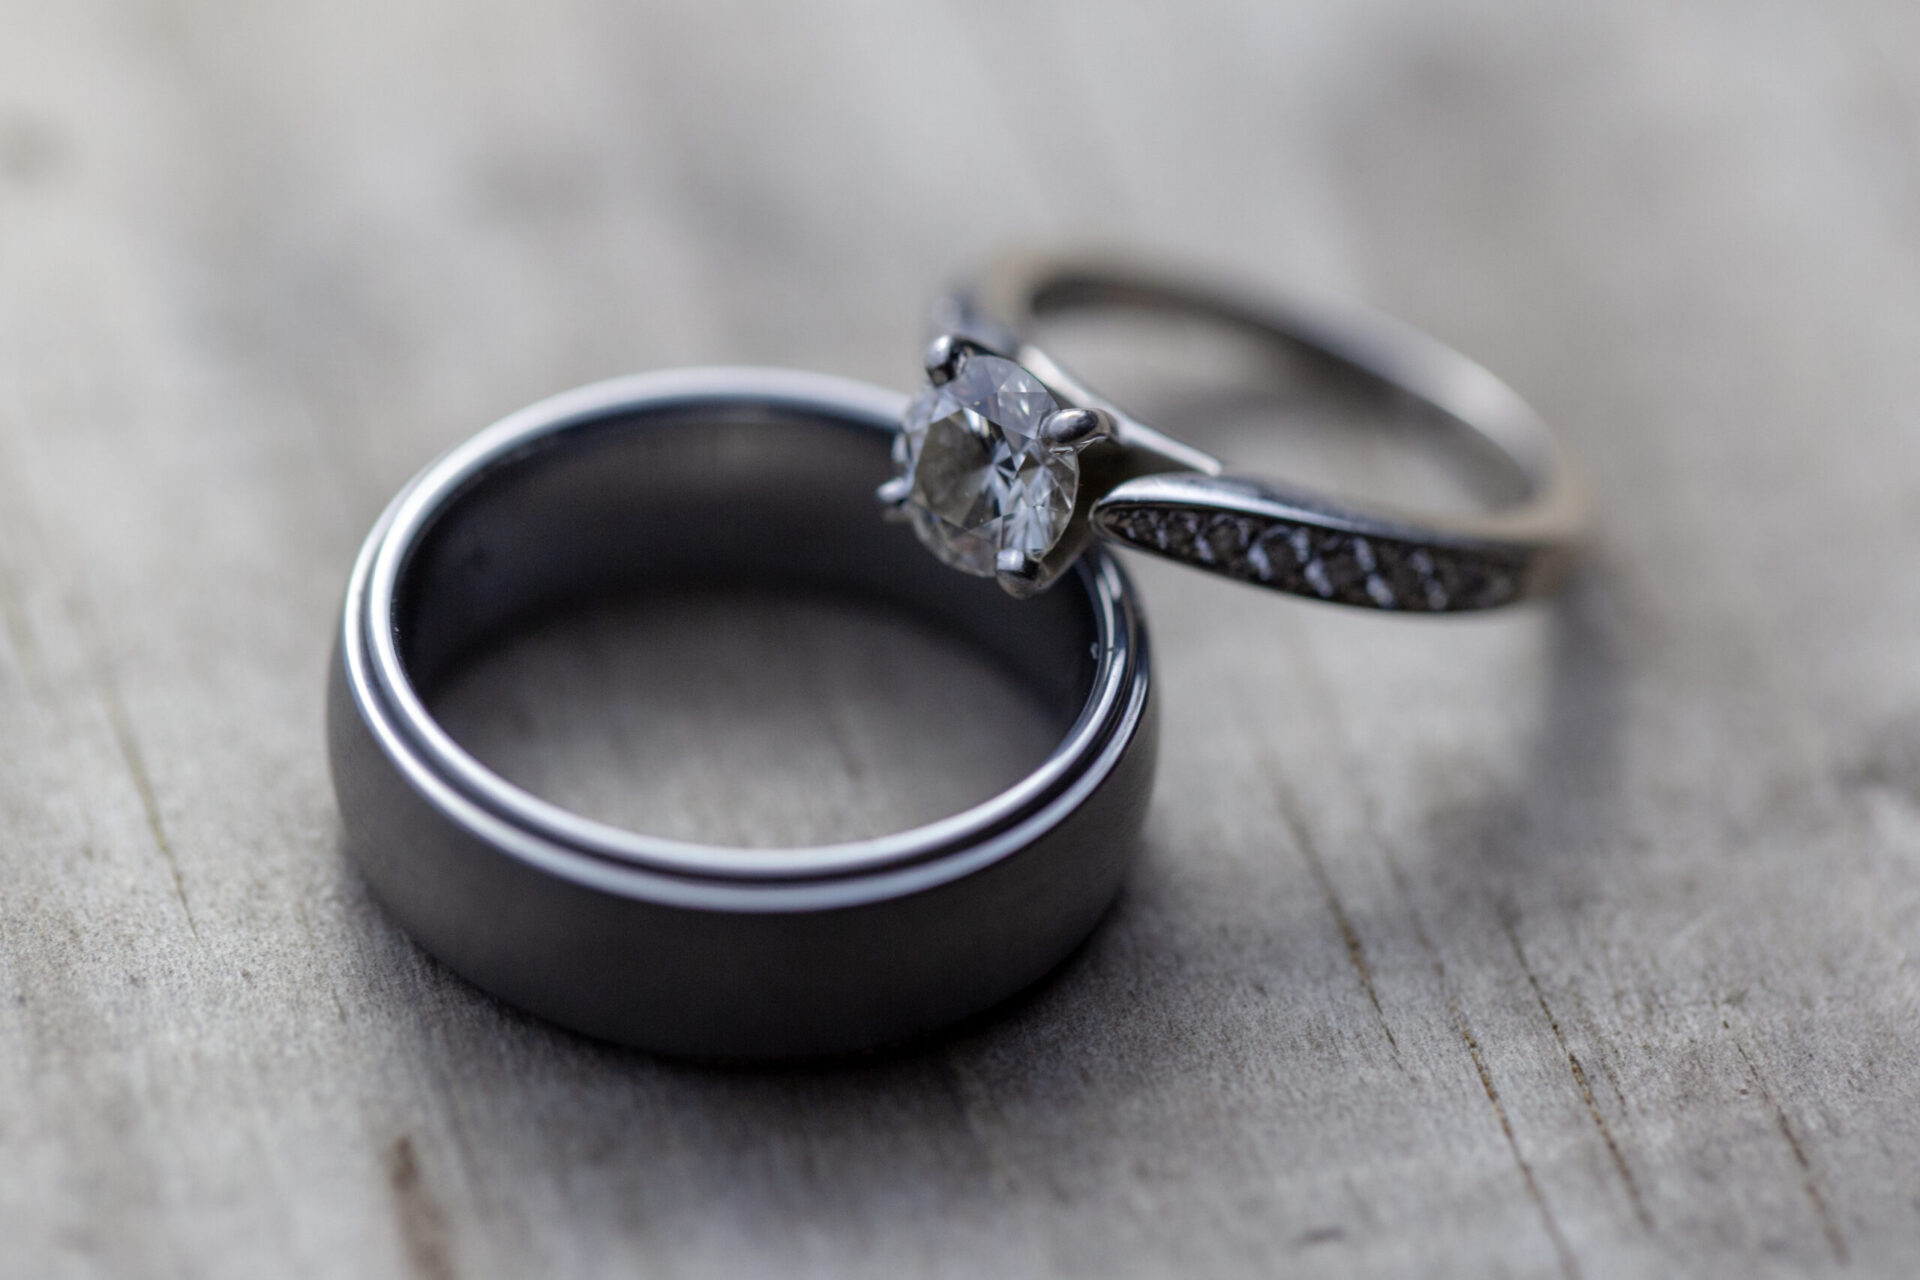 I Got Married Last Year, What Should My Tax Filing Status Be?